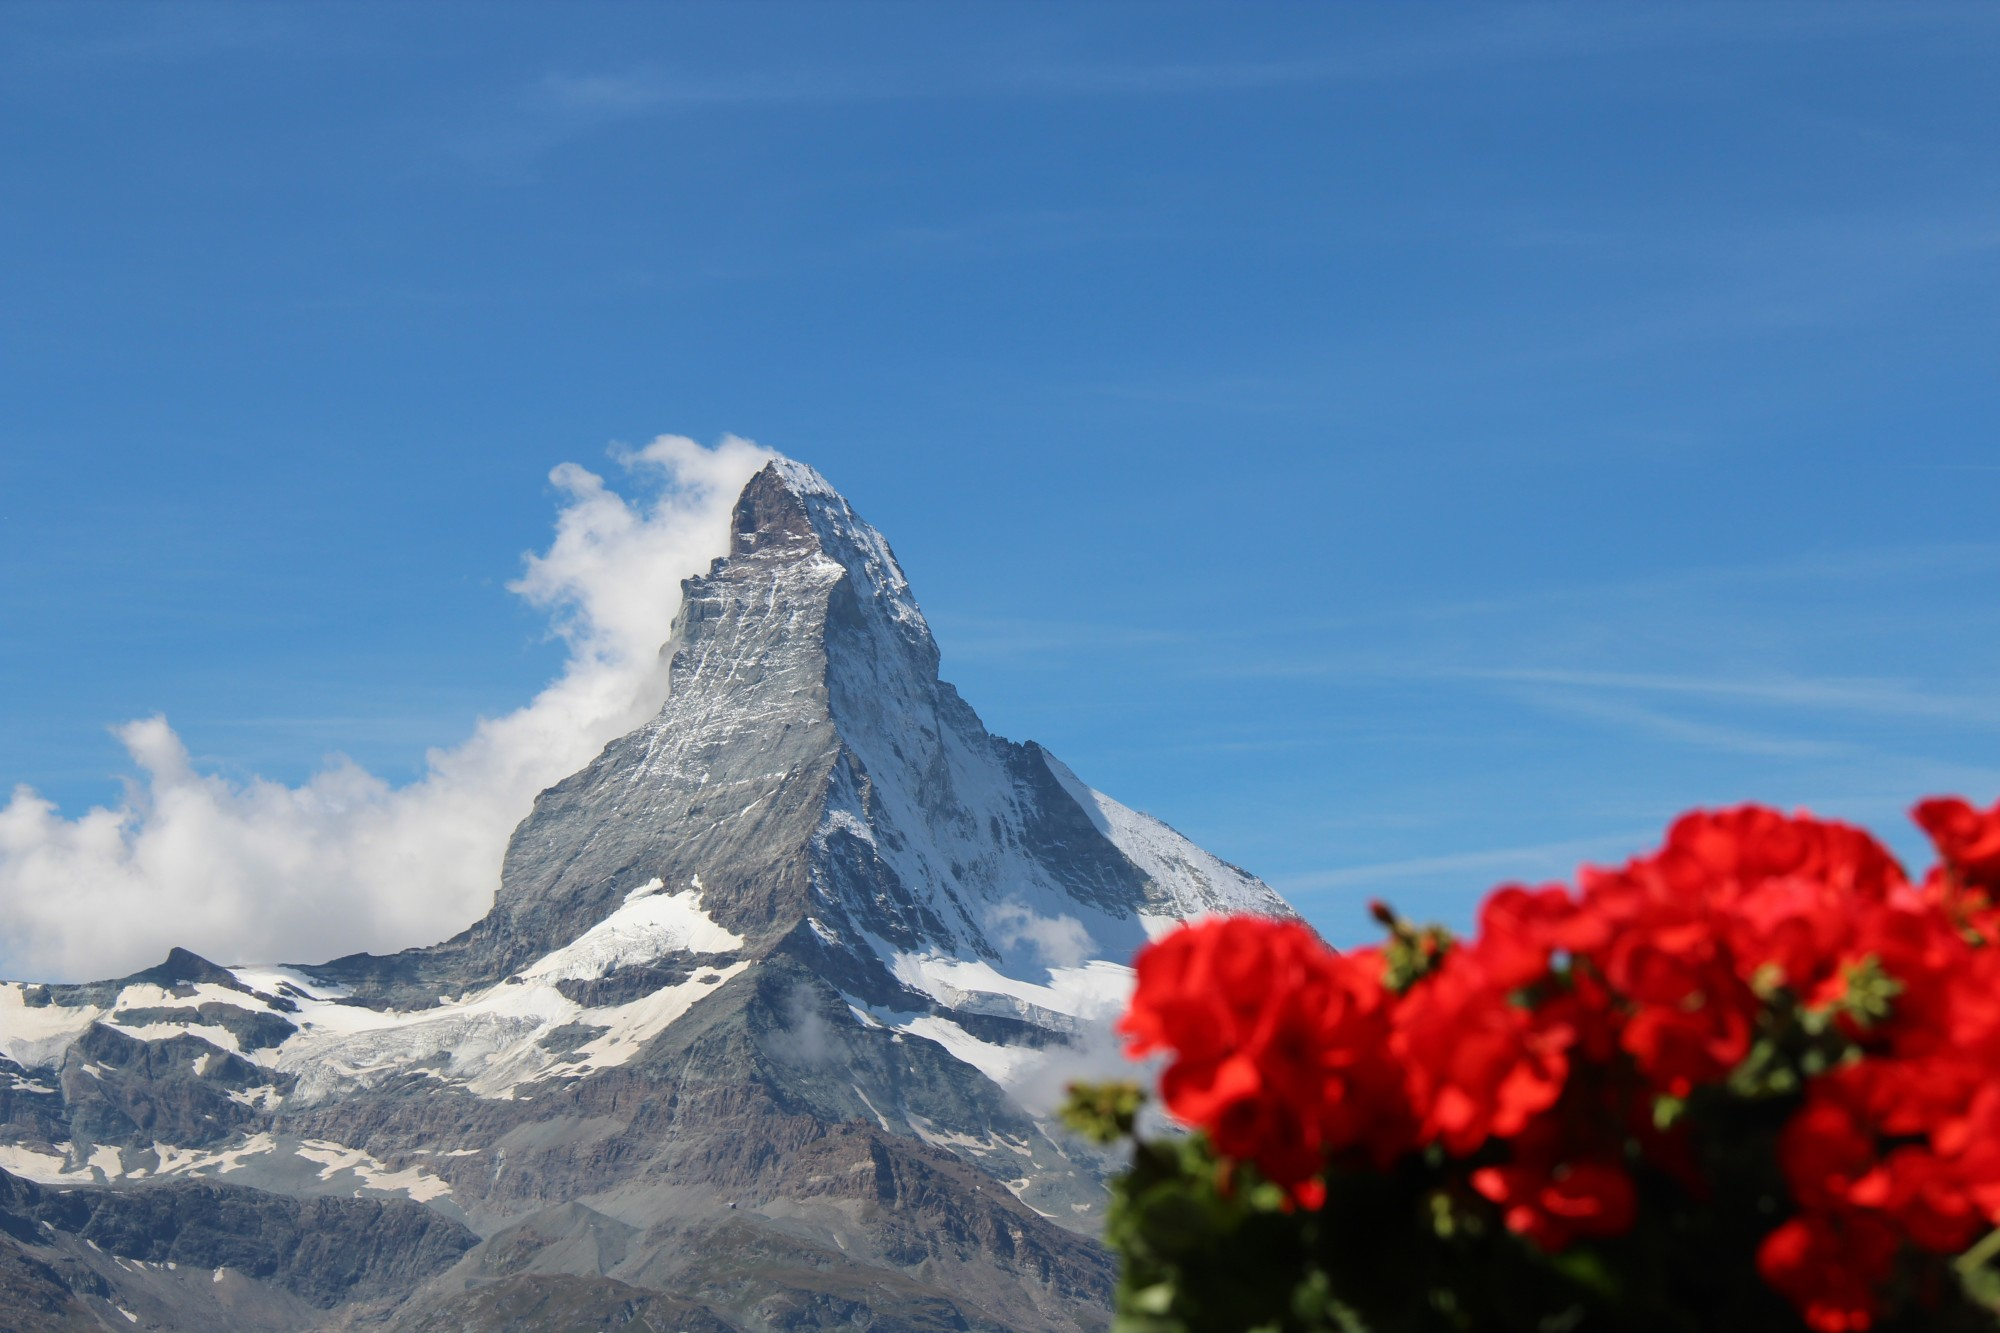 Flowers at the Matterhorn